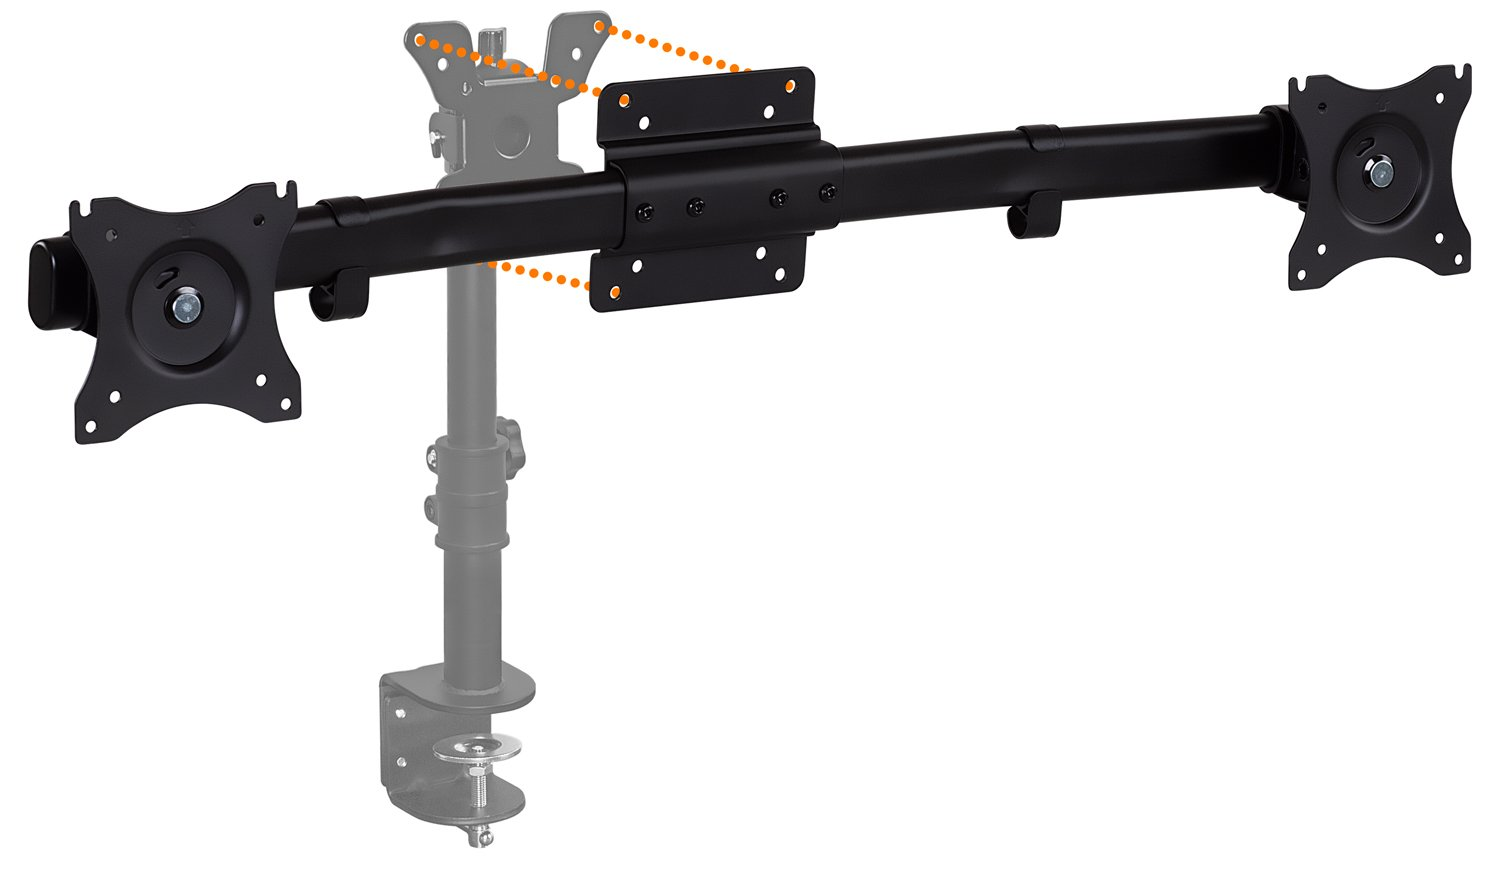 Mount-It! Dual Monitor Adapter, Convert Your Single Monitor to Dual Monitor VESA Mount, Fits Two 22, 24, 25, 27 inch Monitors